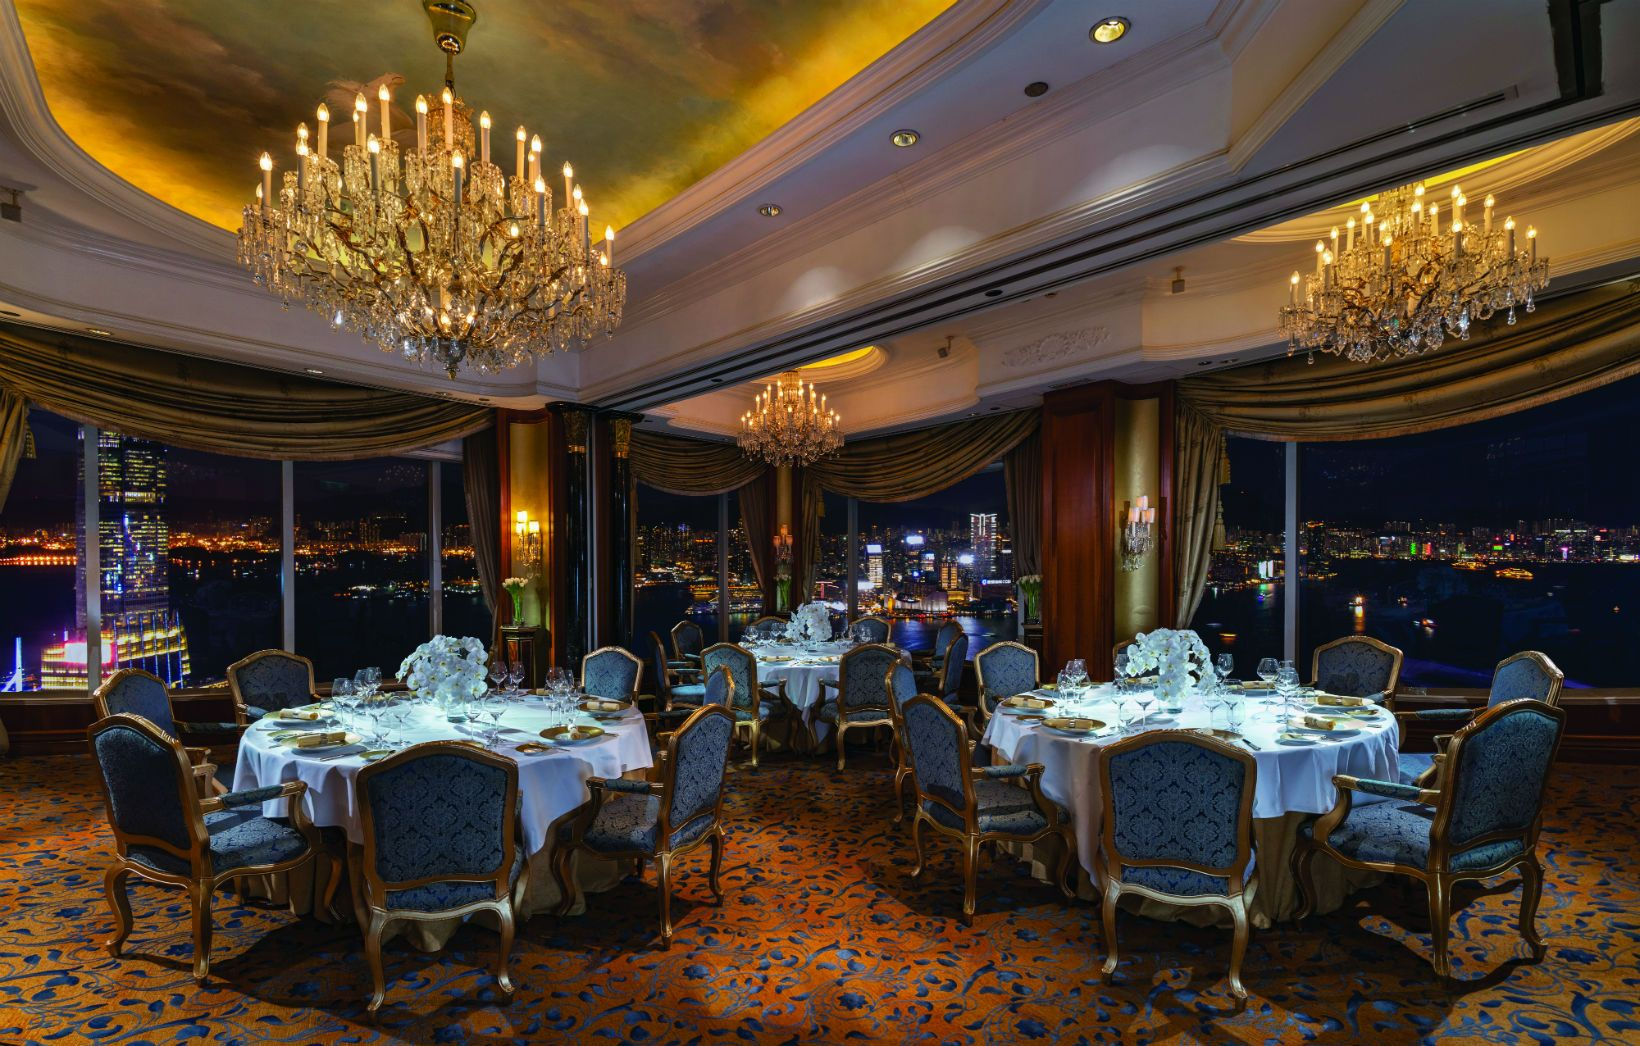 Enjoy The Last Supper From The Titanic At Island Shangri-La, Hong Kong